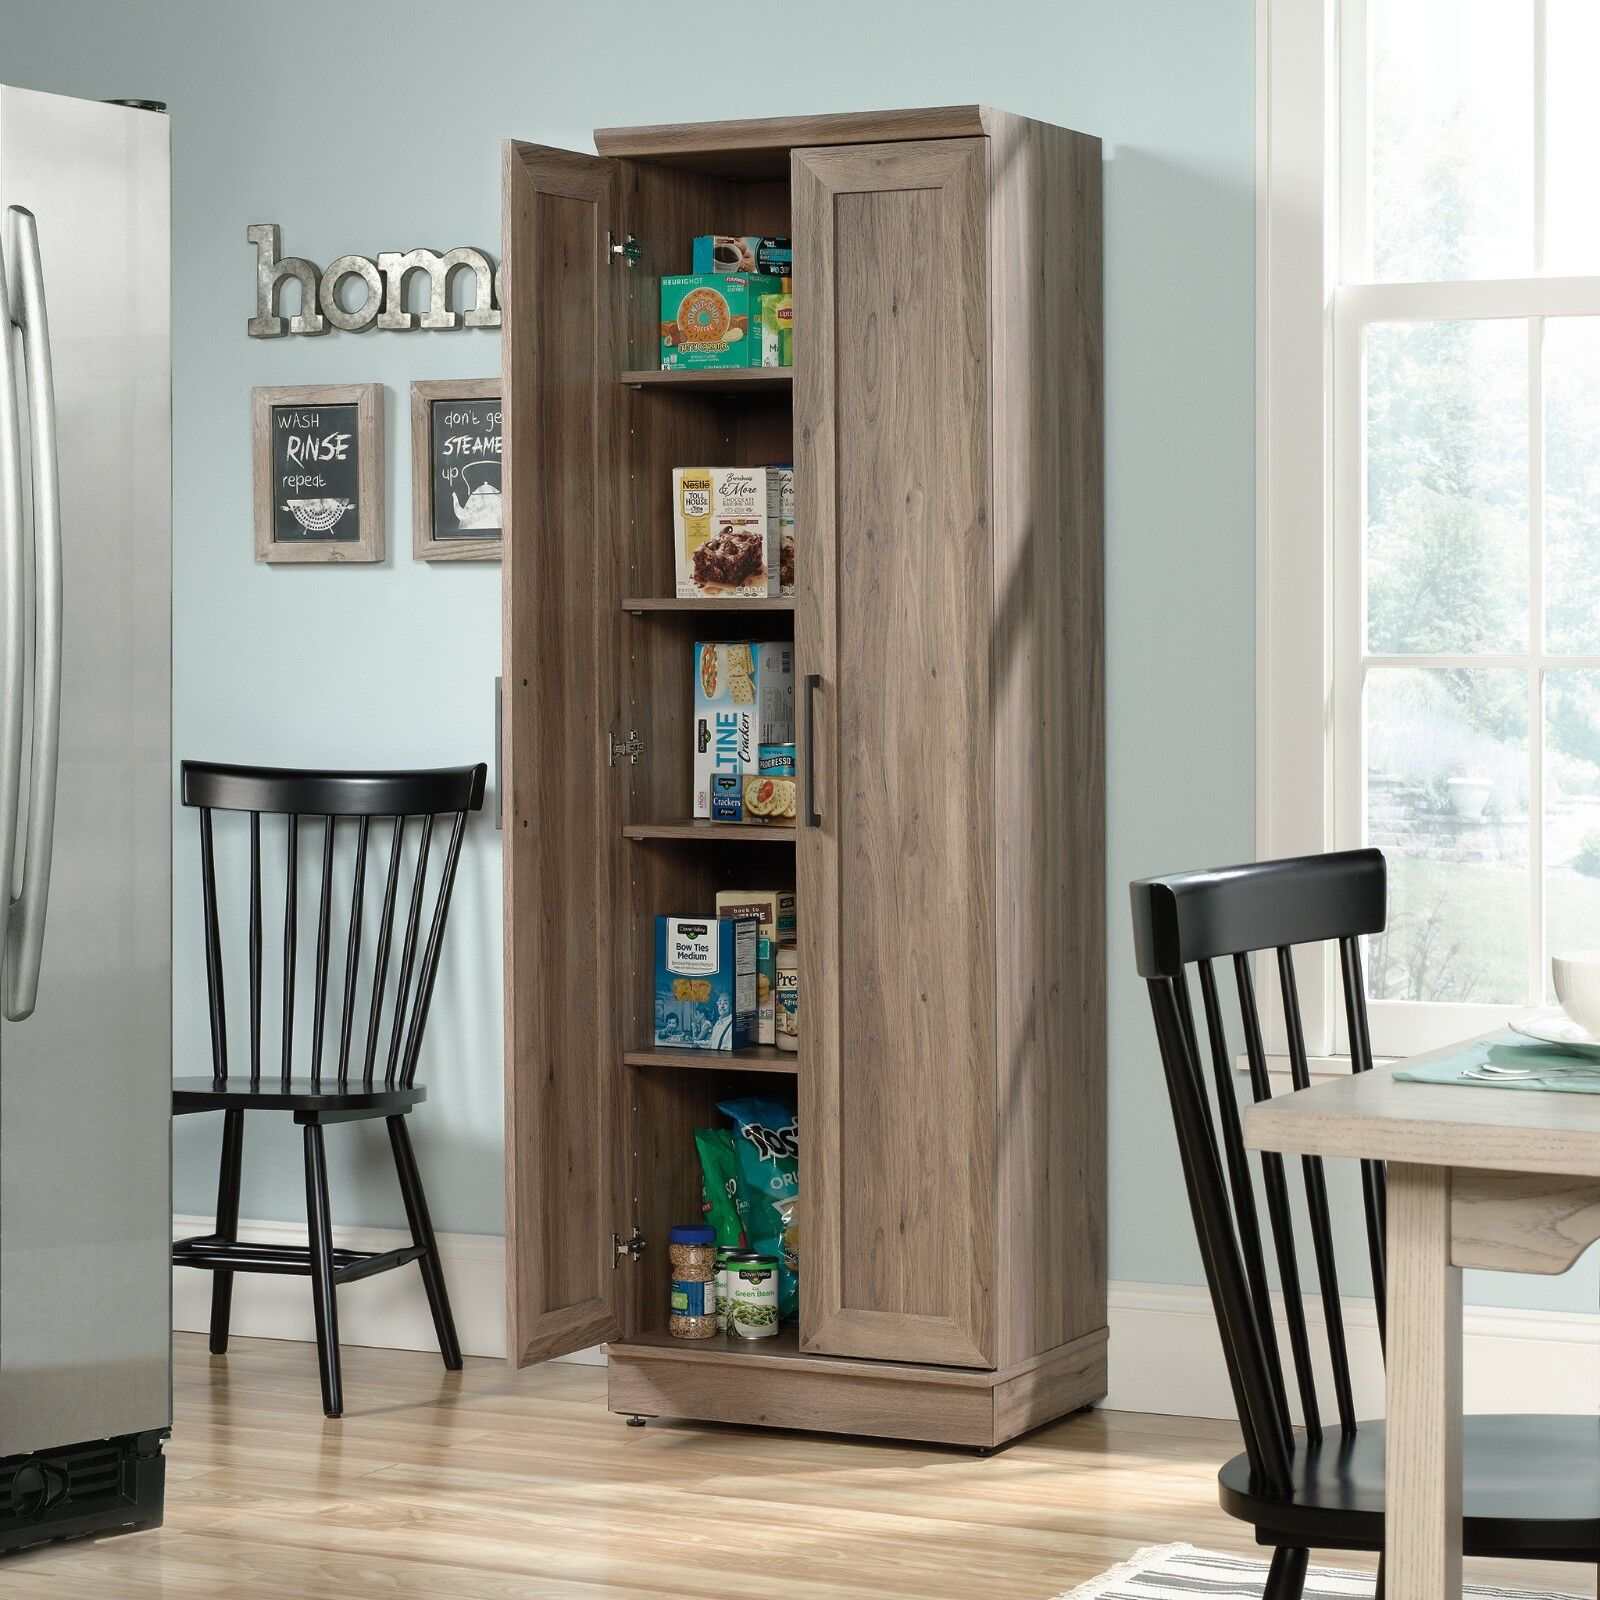 Tall Kitchen Cabinets Storage Rustic Wood Oak Pantry Armoire Bathroom Bedroom For Sale Online Ebay